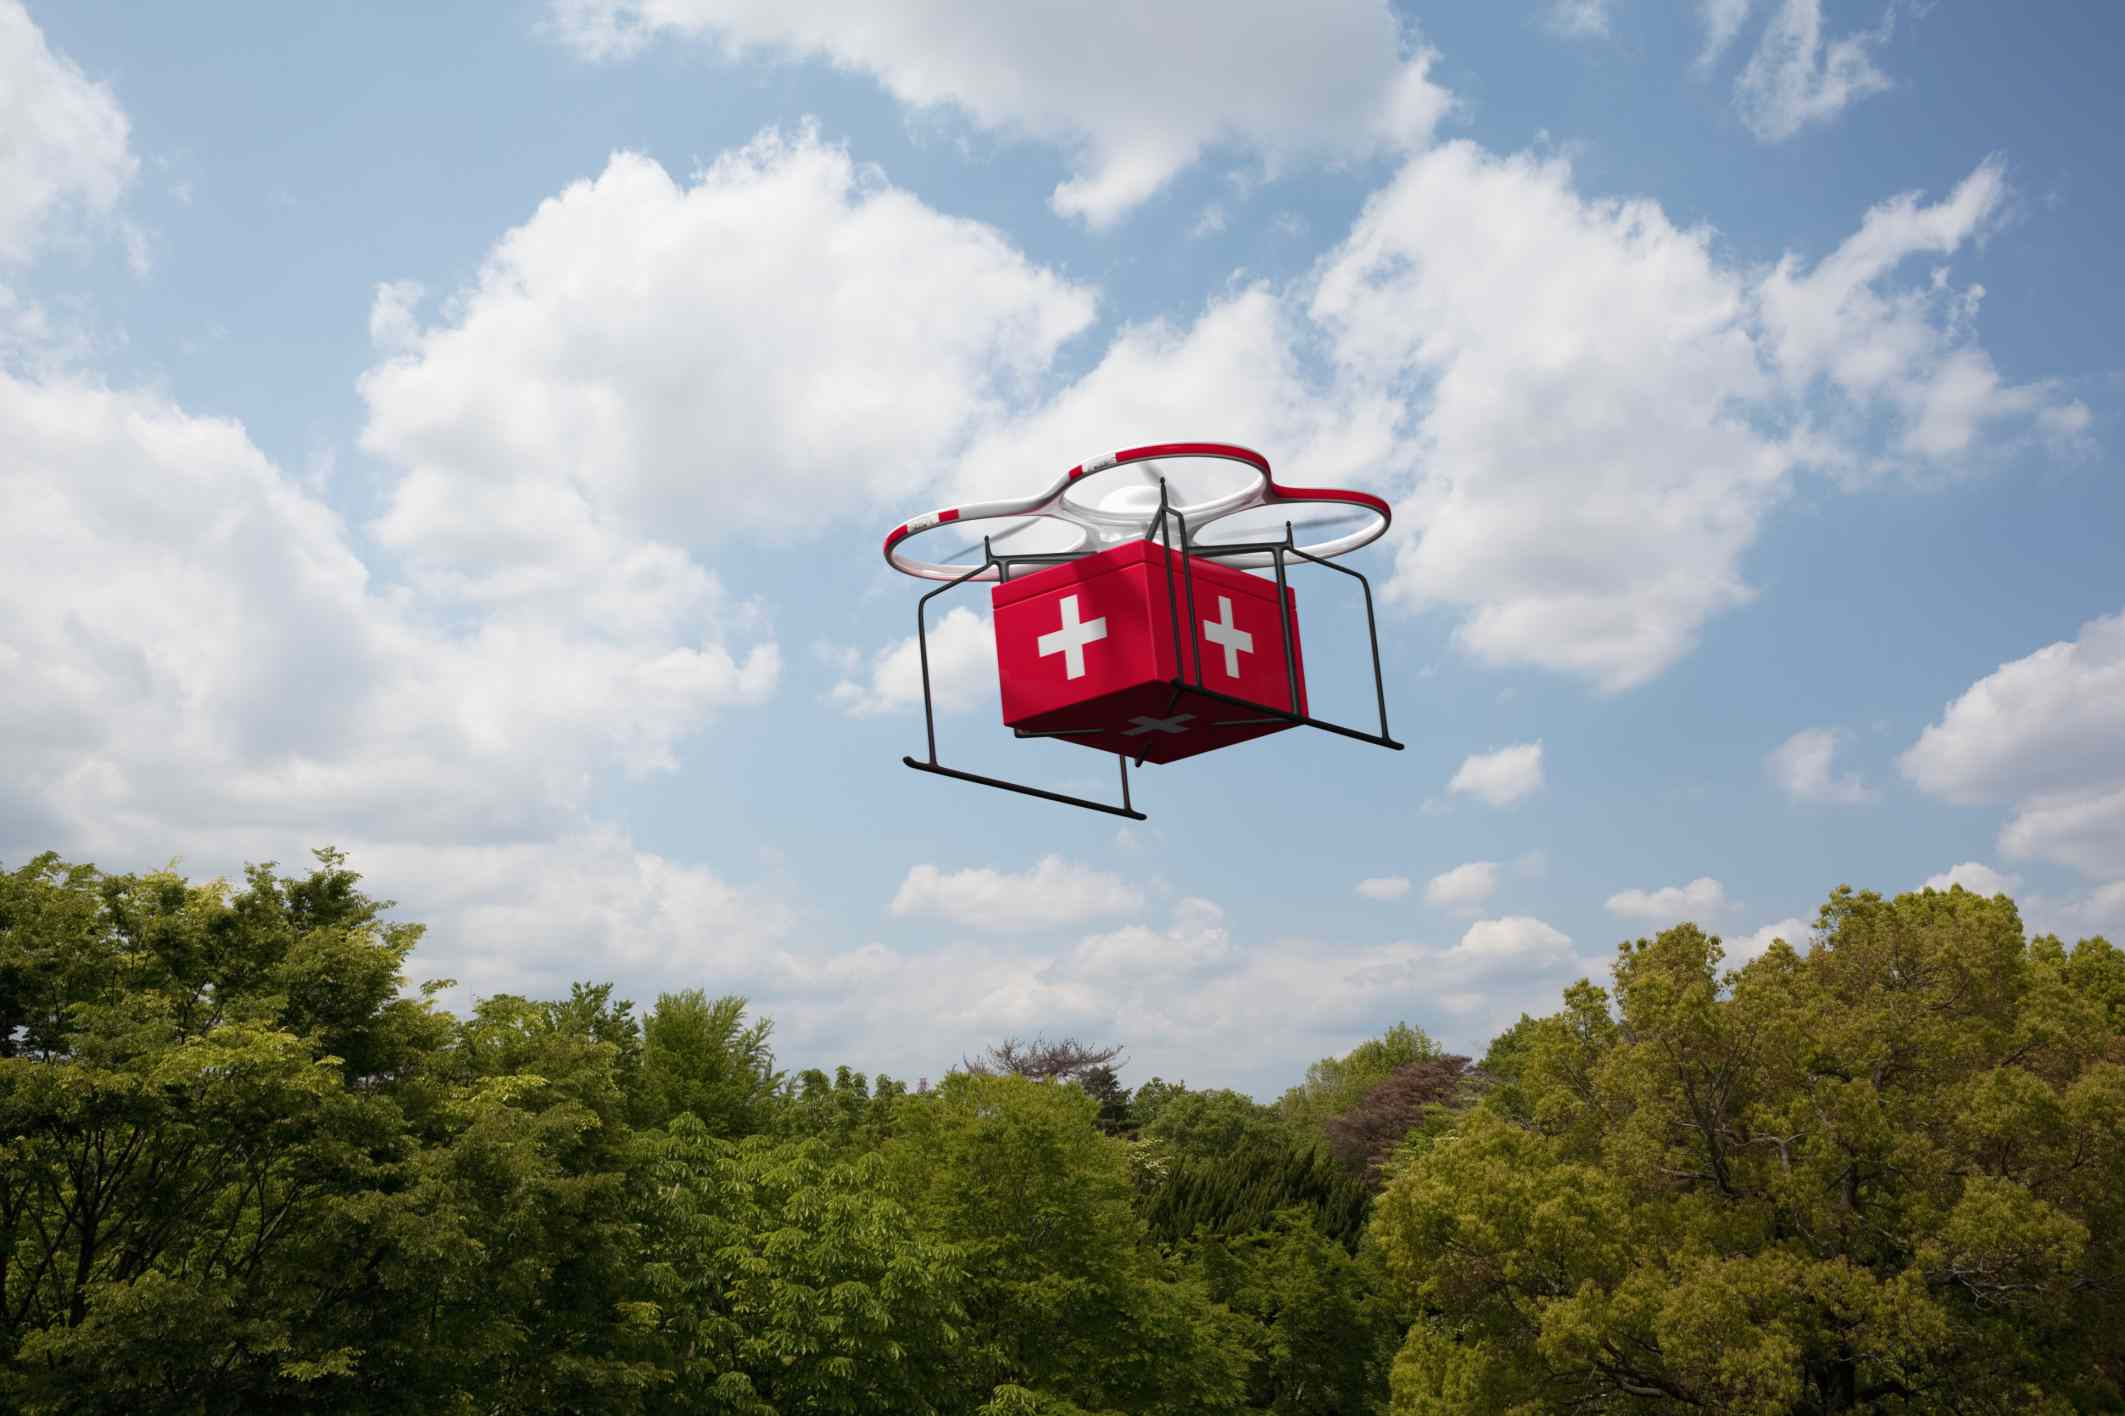 Drone carrying a first aid box above a tree line